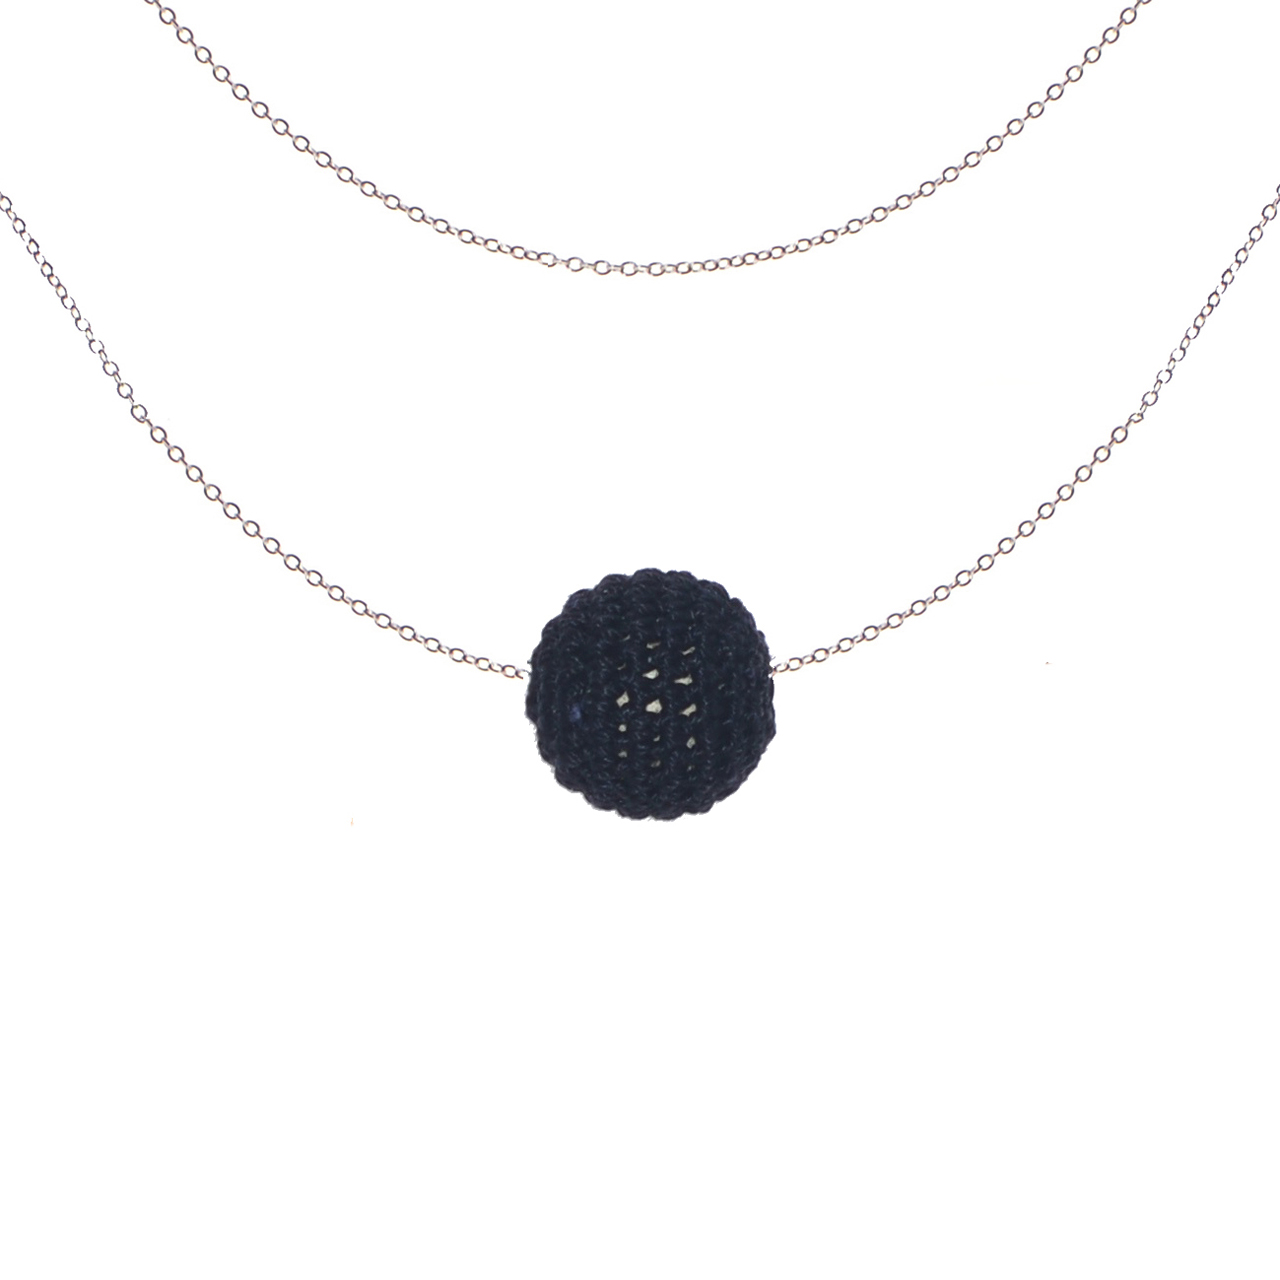 Mon Bijou - Necklace Night Out 1 charcoal | The Design Gift Shop